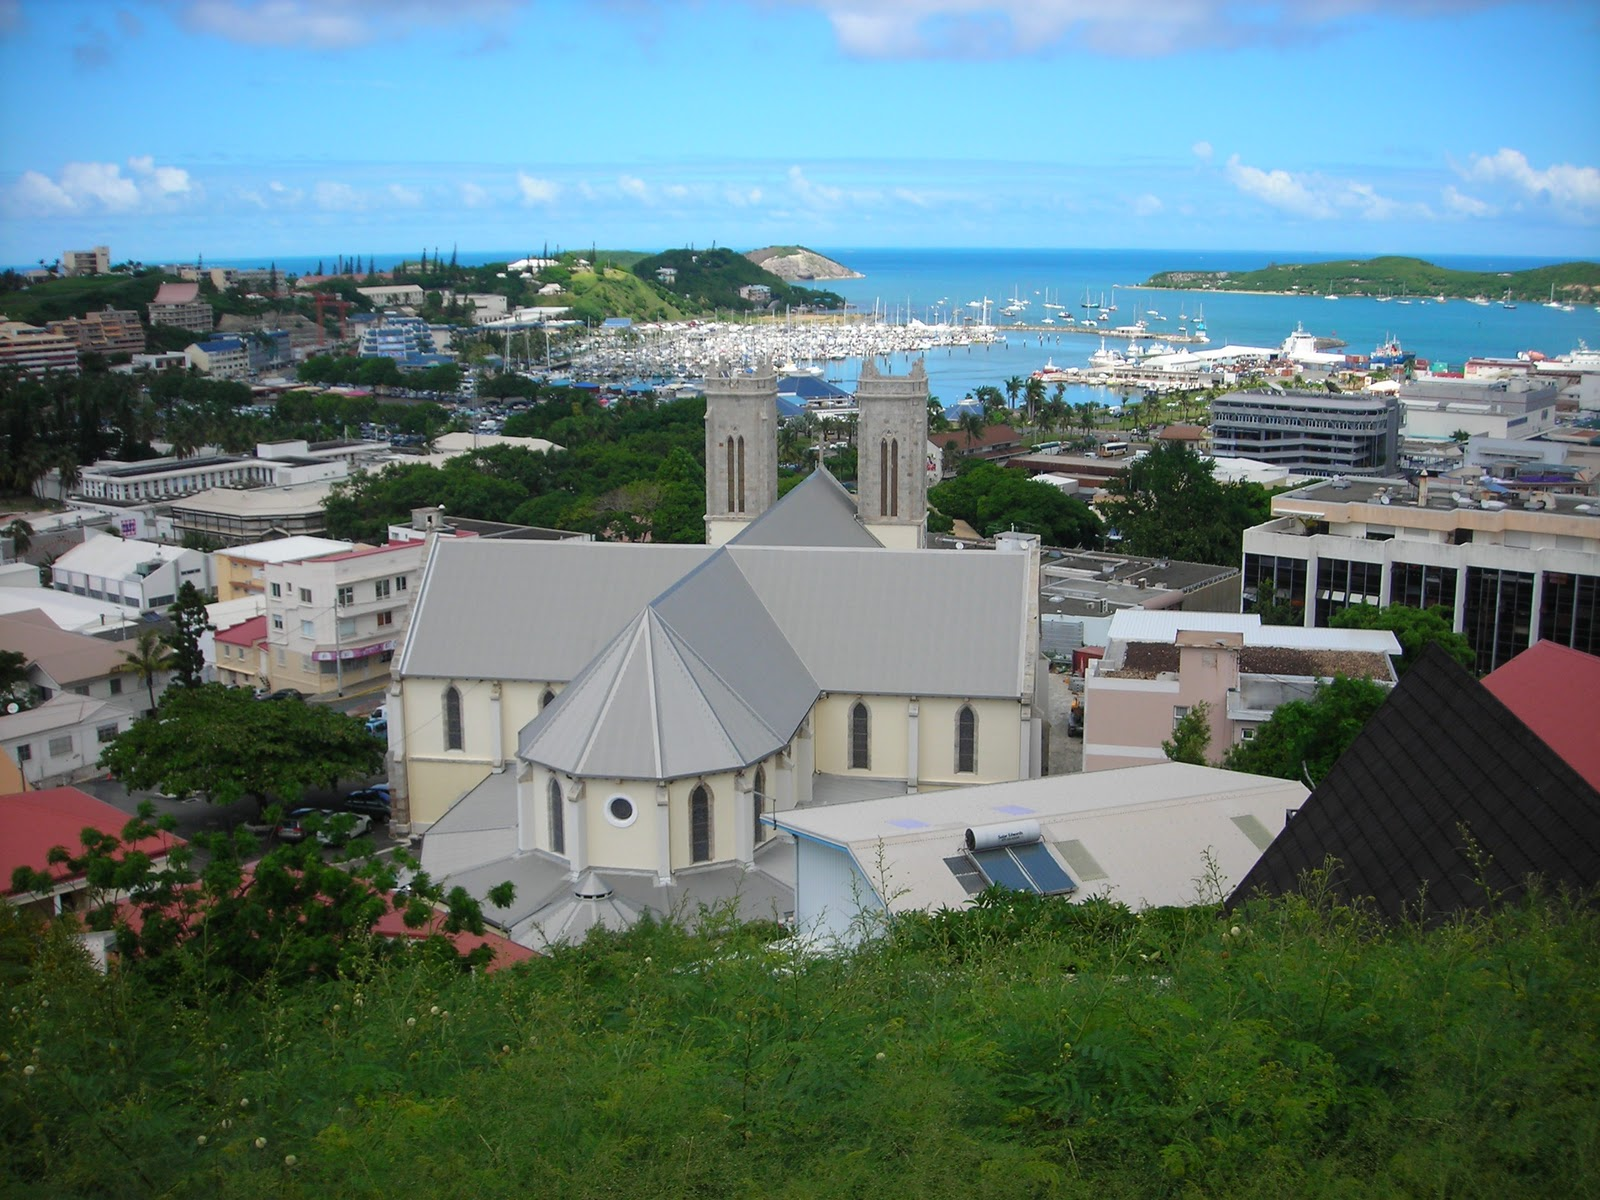 pago pago guys Book pago airport inn, pago pago on tripadvisor: and cheap rates for pago airport inn would be preferable ask about meals being provided great guys offer.